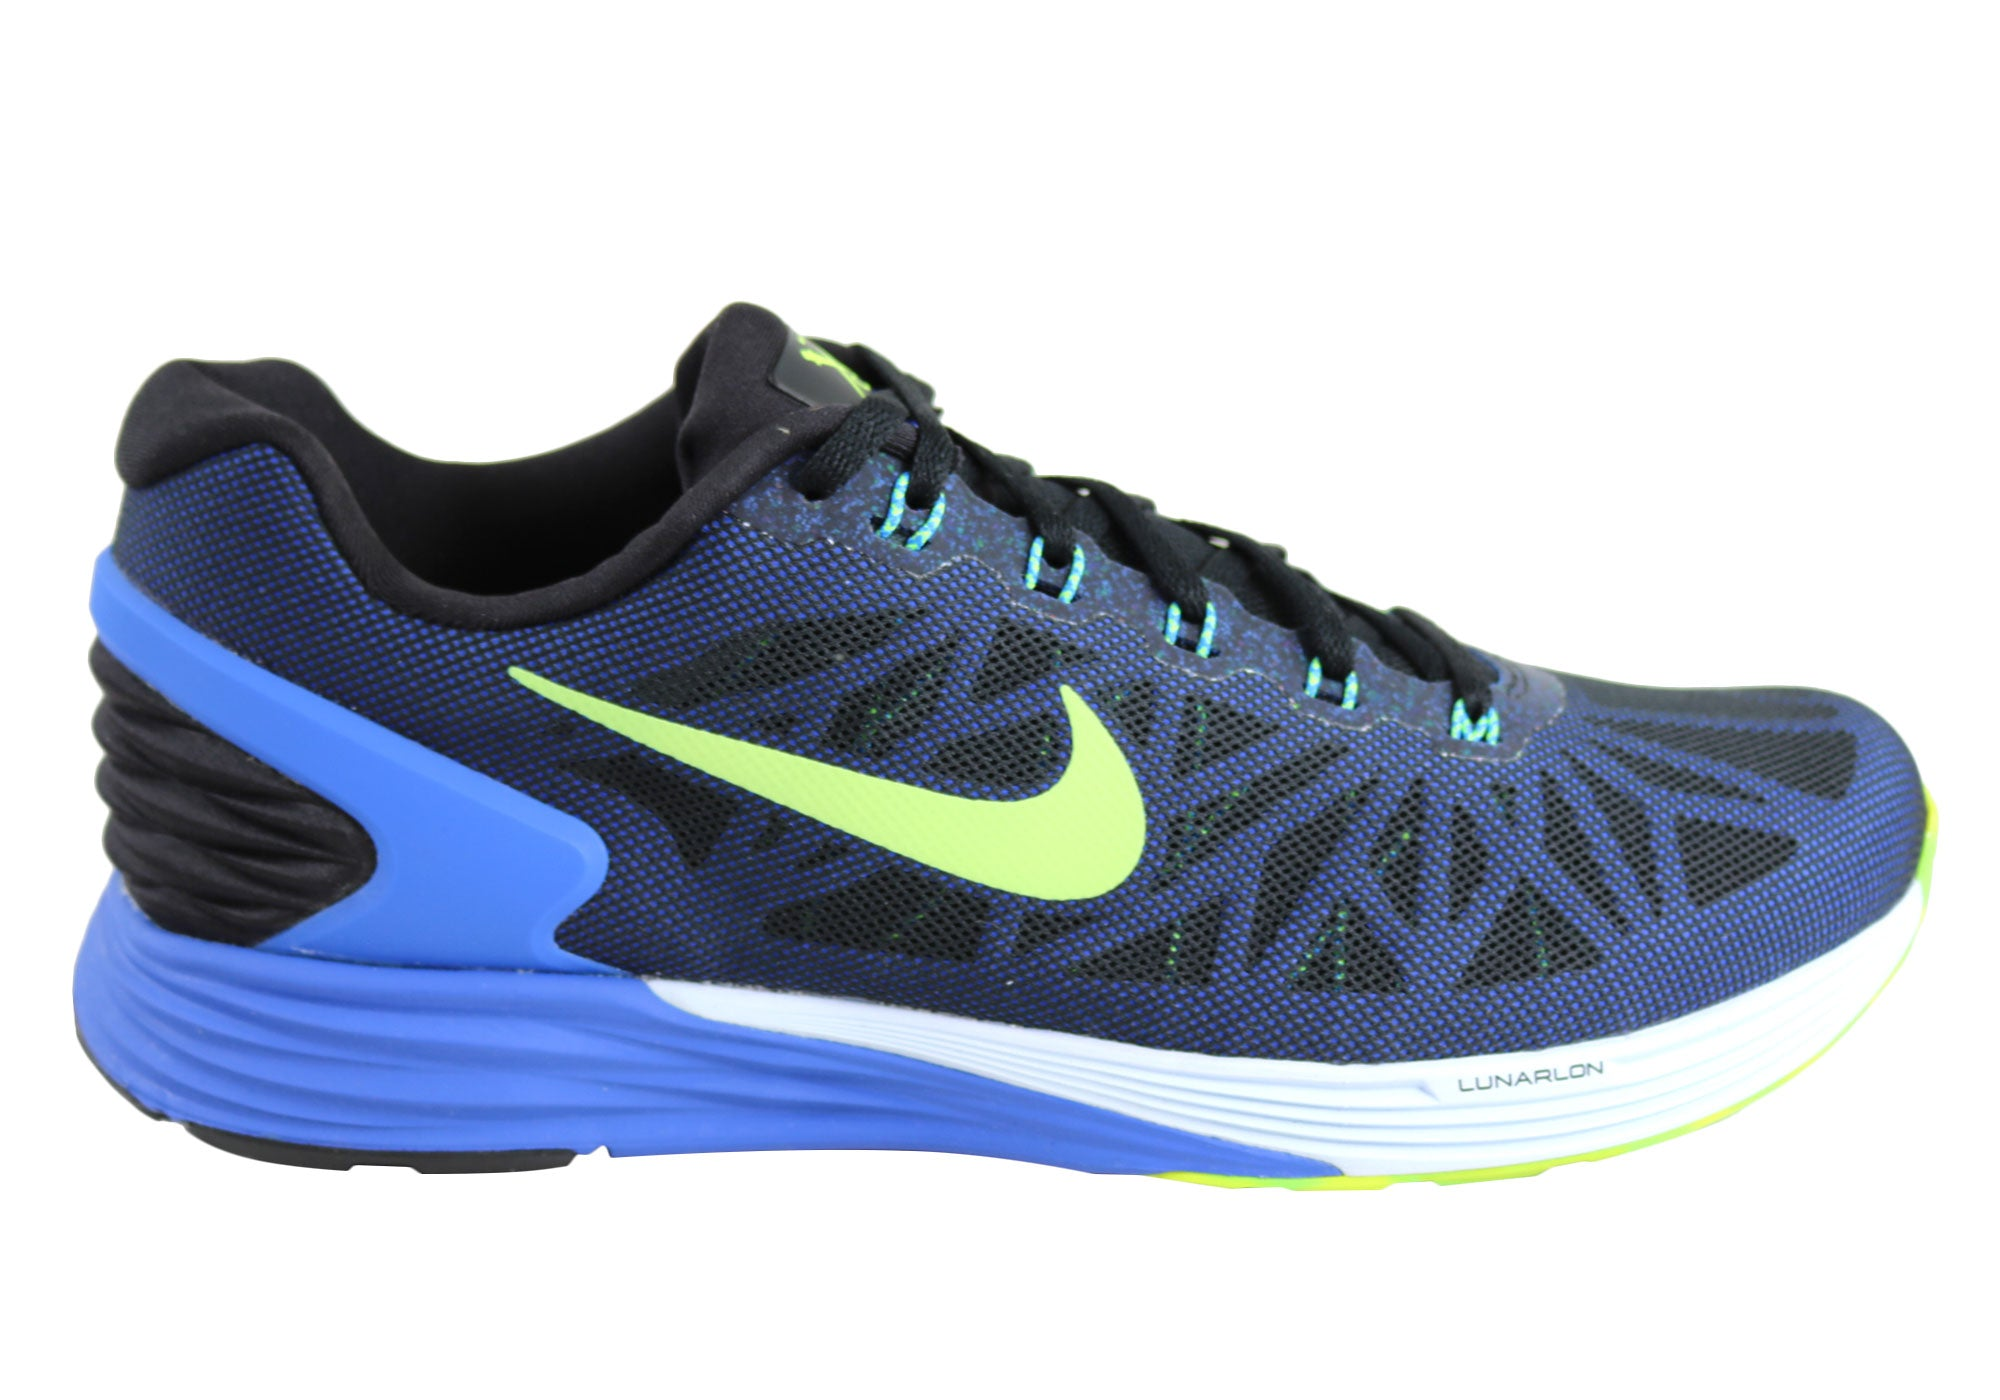 New Mens Nike Lunarglide 6 Running Cushioned Sport Shoes  2a82d6c5d1a9